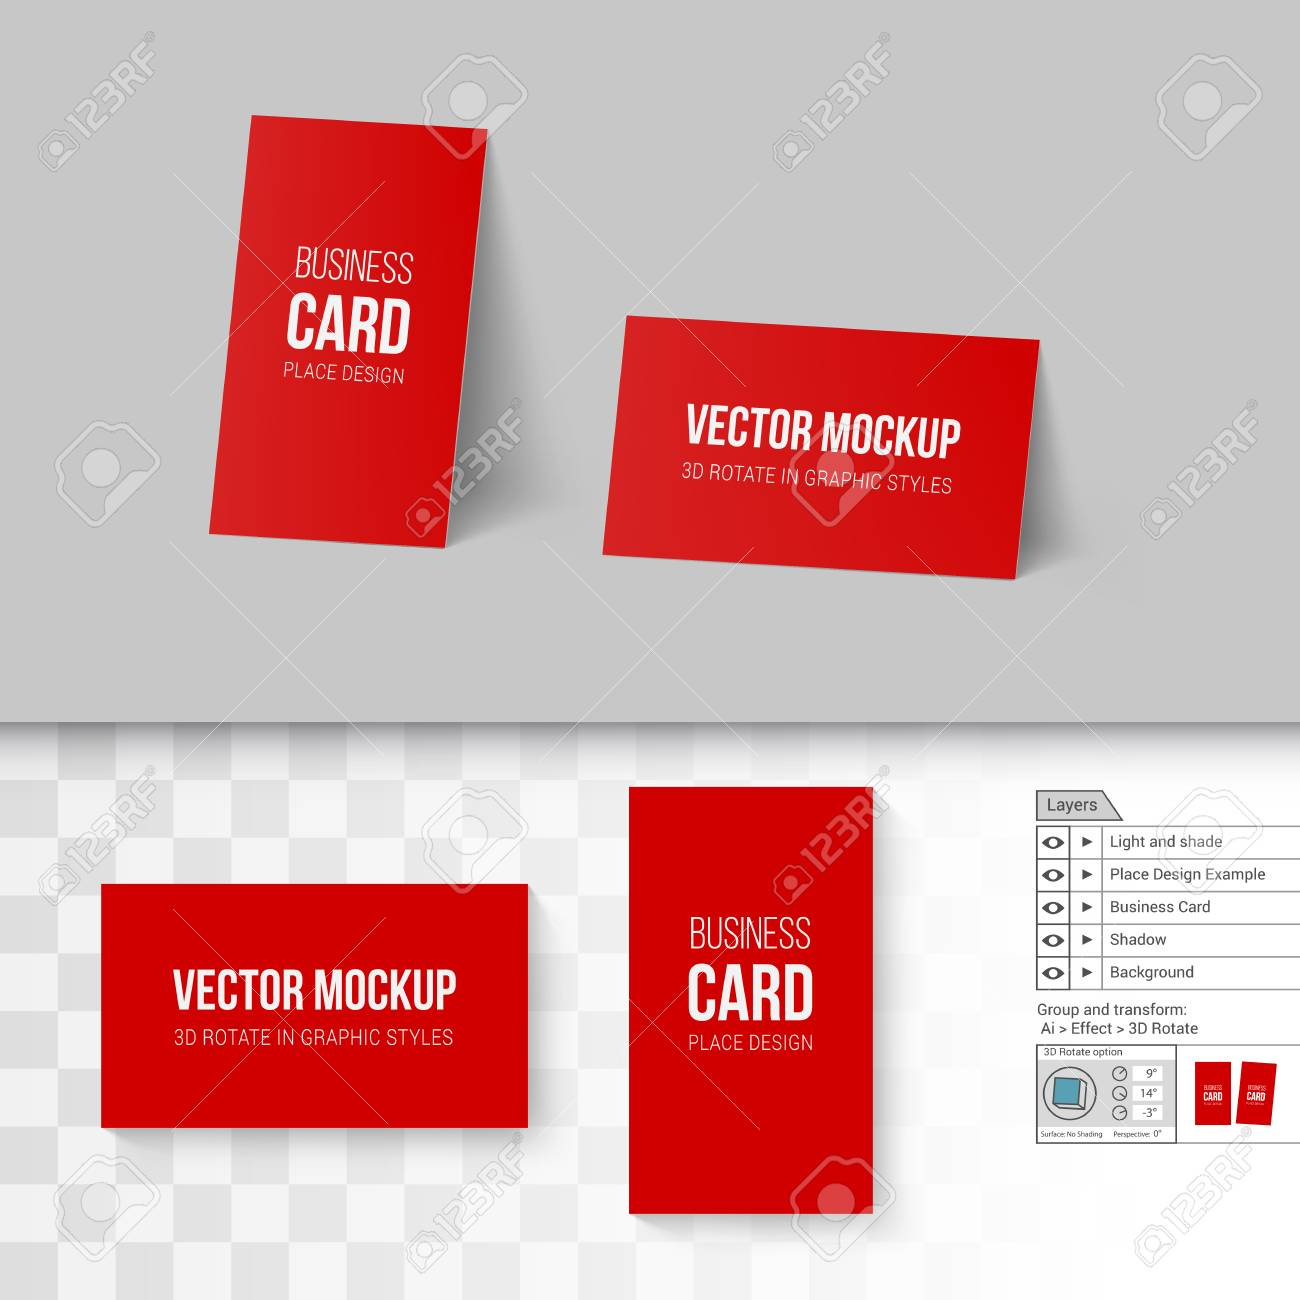 Red business cards template corporate identity branding mock red business cards template corporate identity branding mock up with 3d rotate options on colourmoves